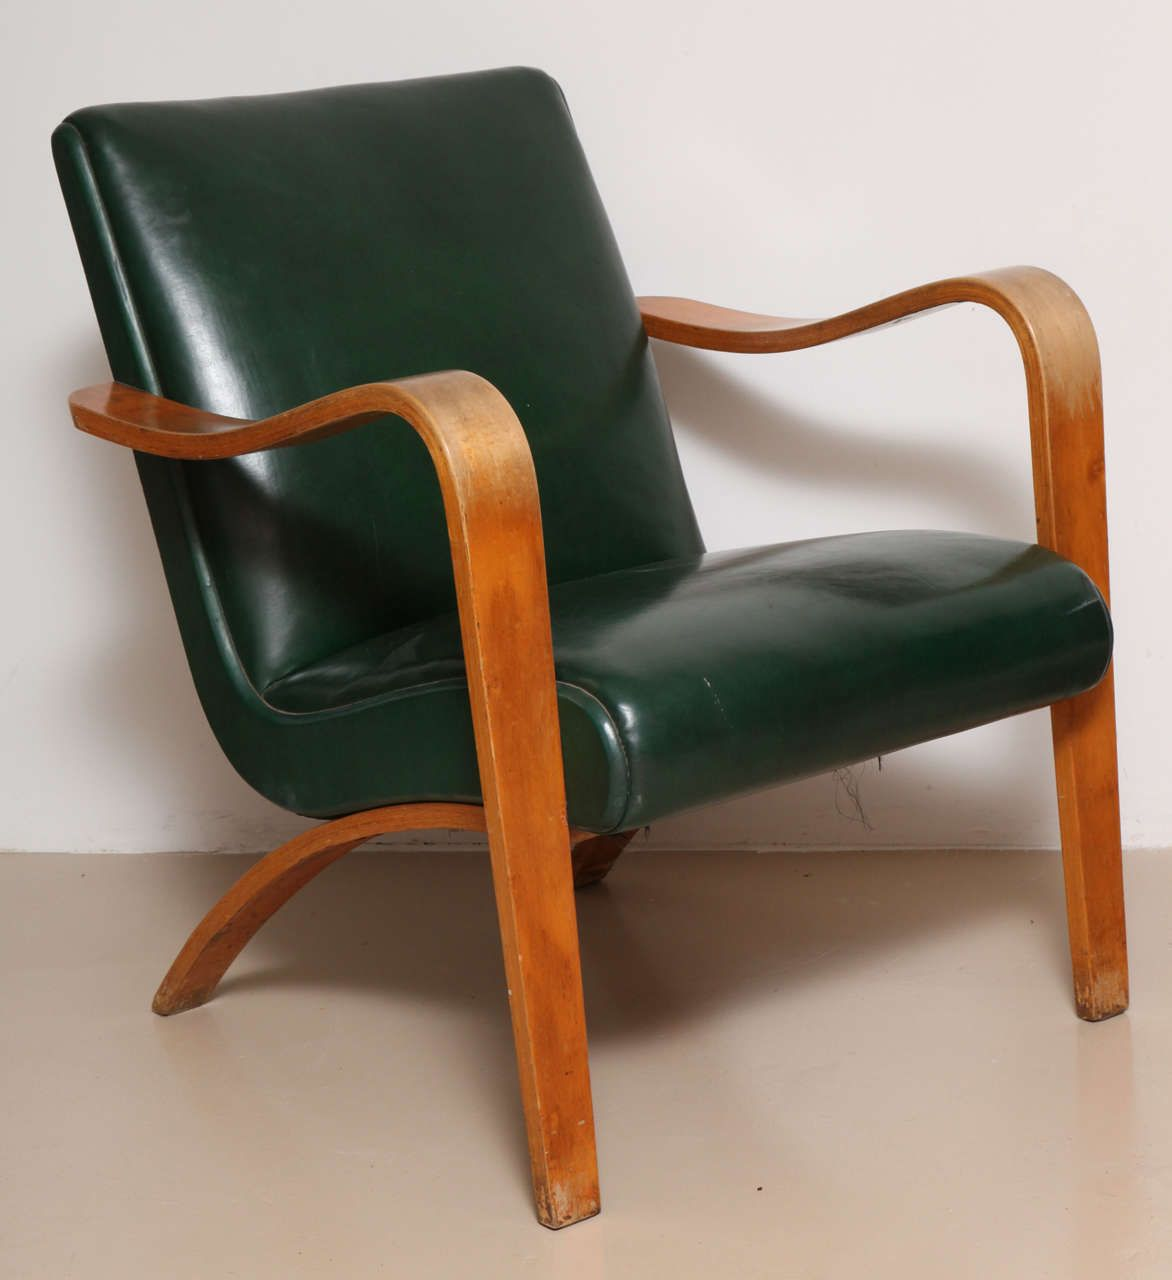 Fantastic Michael Thonet 1940S Bentwood Lounge Chair Vintage Gmtry Best Dining Table And Chair Ideas Images Gmtryco